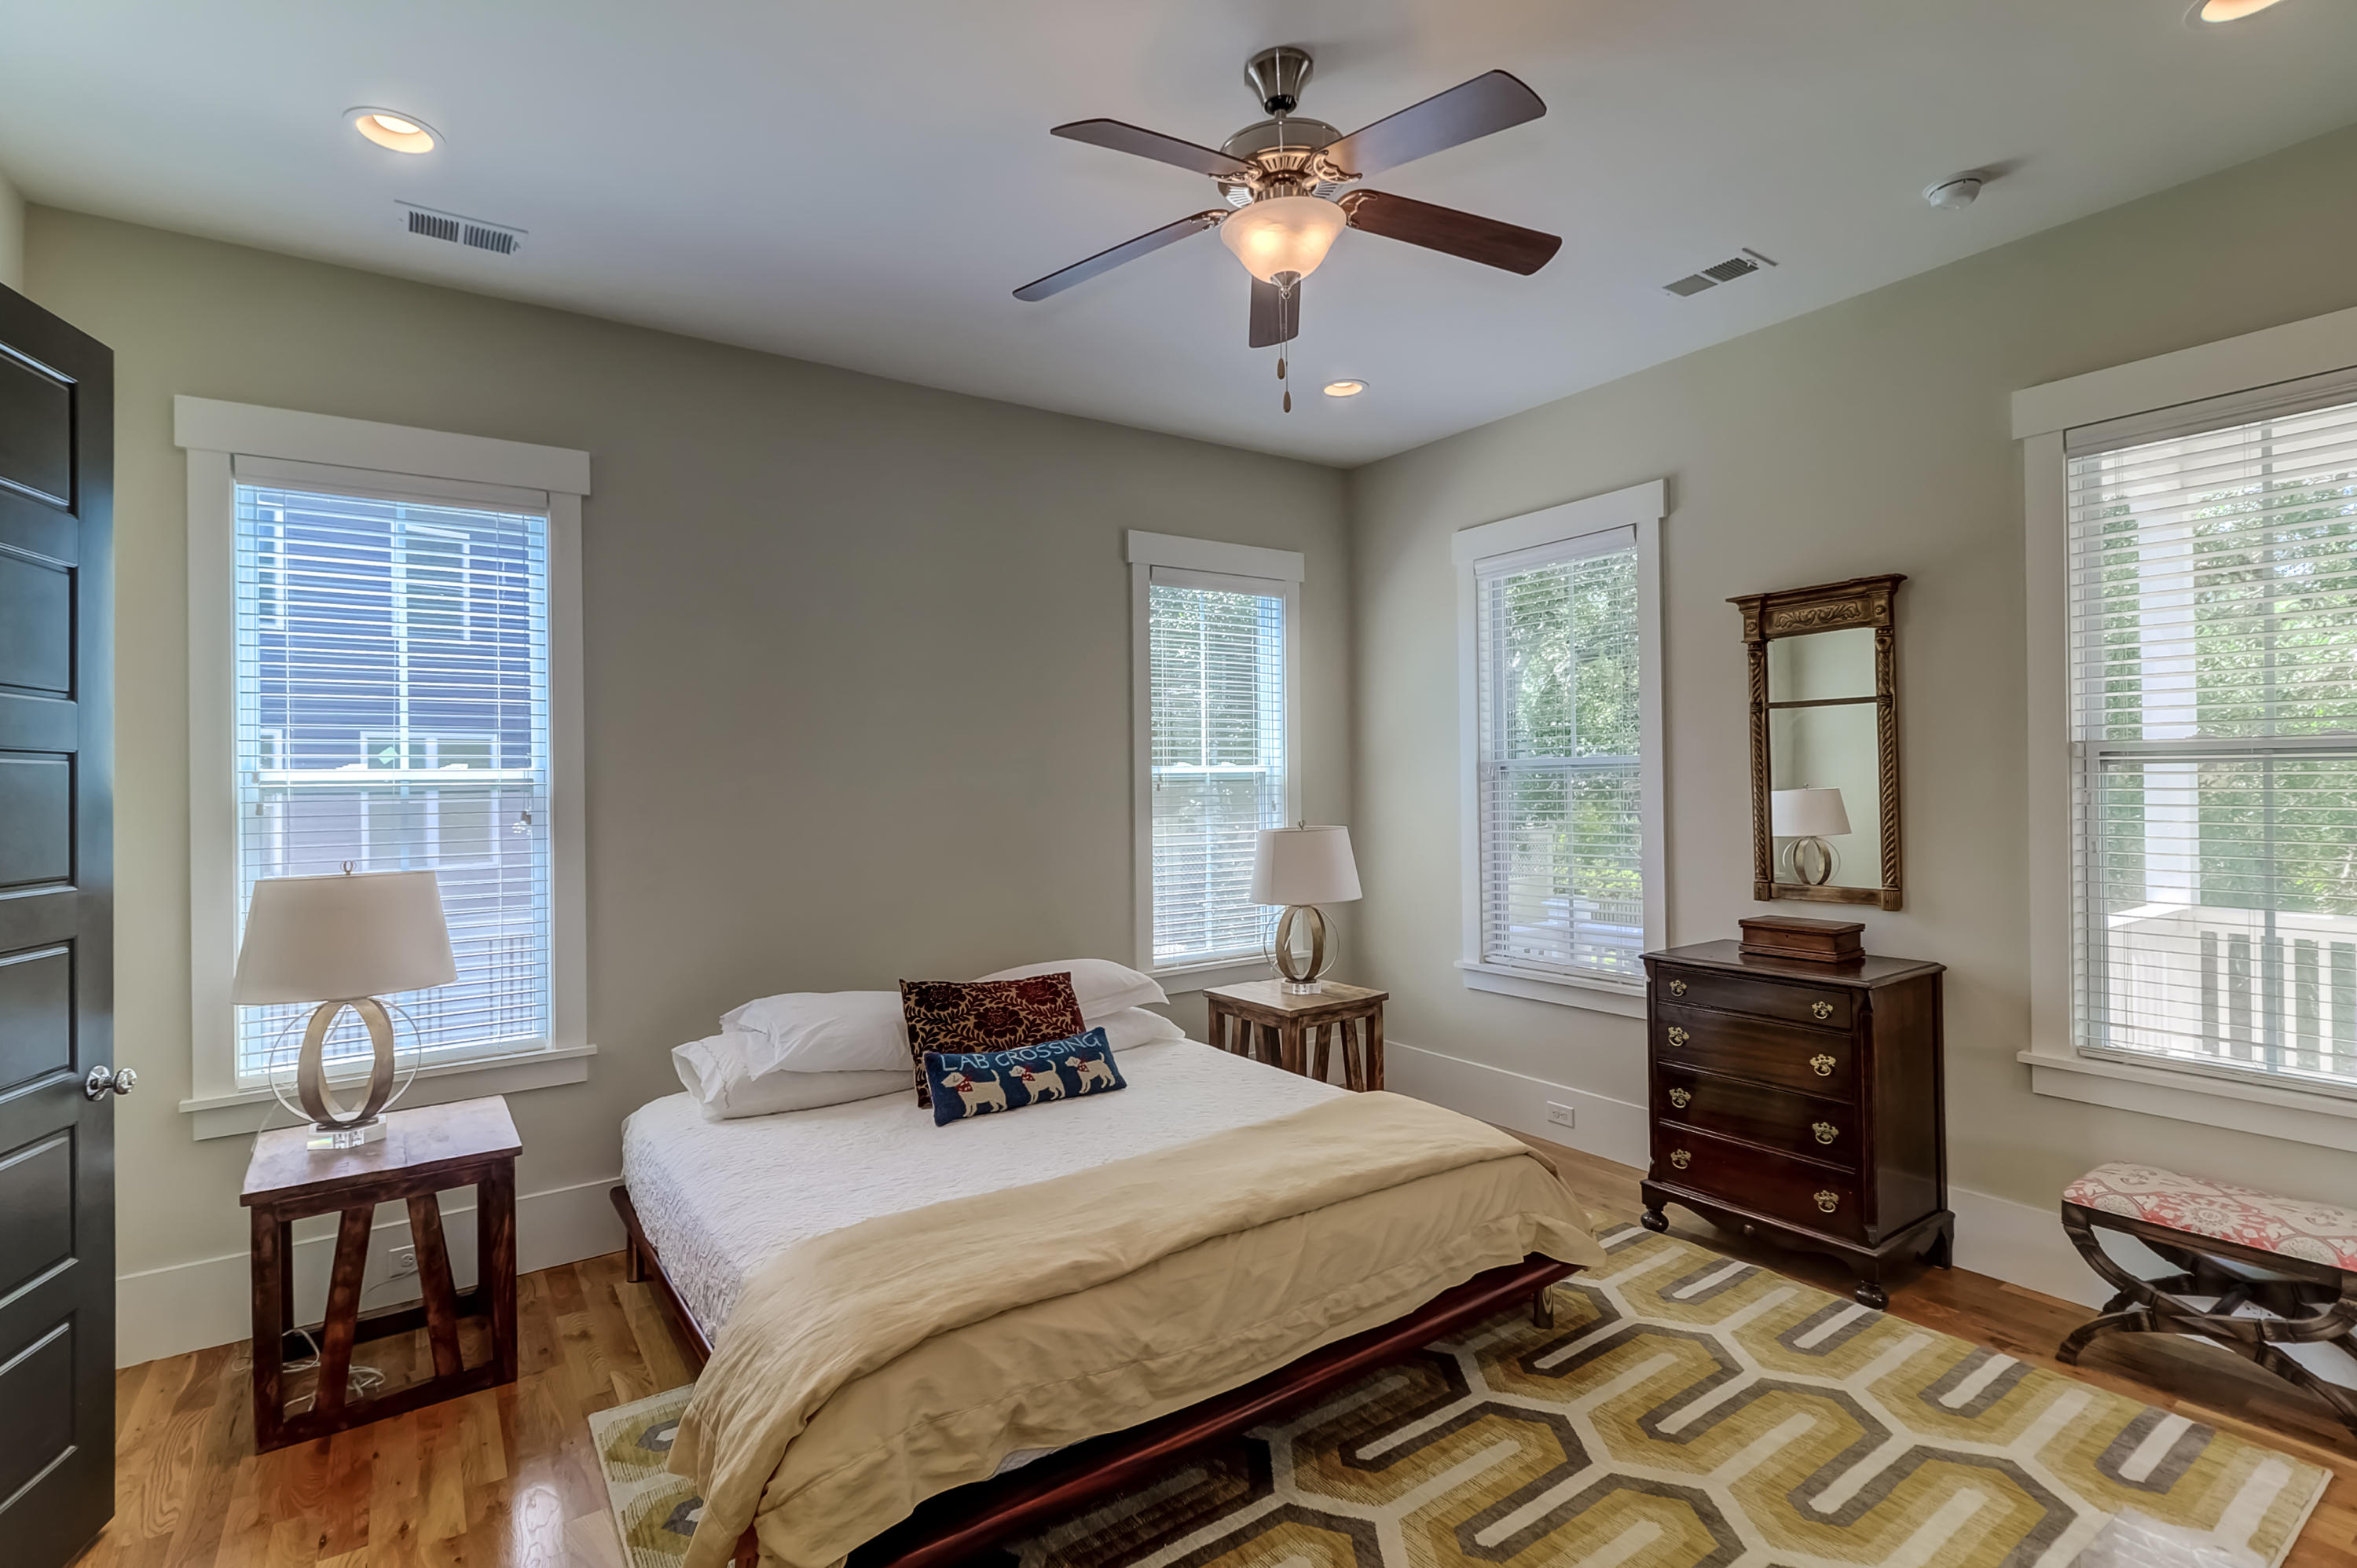 Fiddlers Marsh Homes For Sale - 1499 Fiddlers Lake, Mount Pleasant, SC - 0